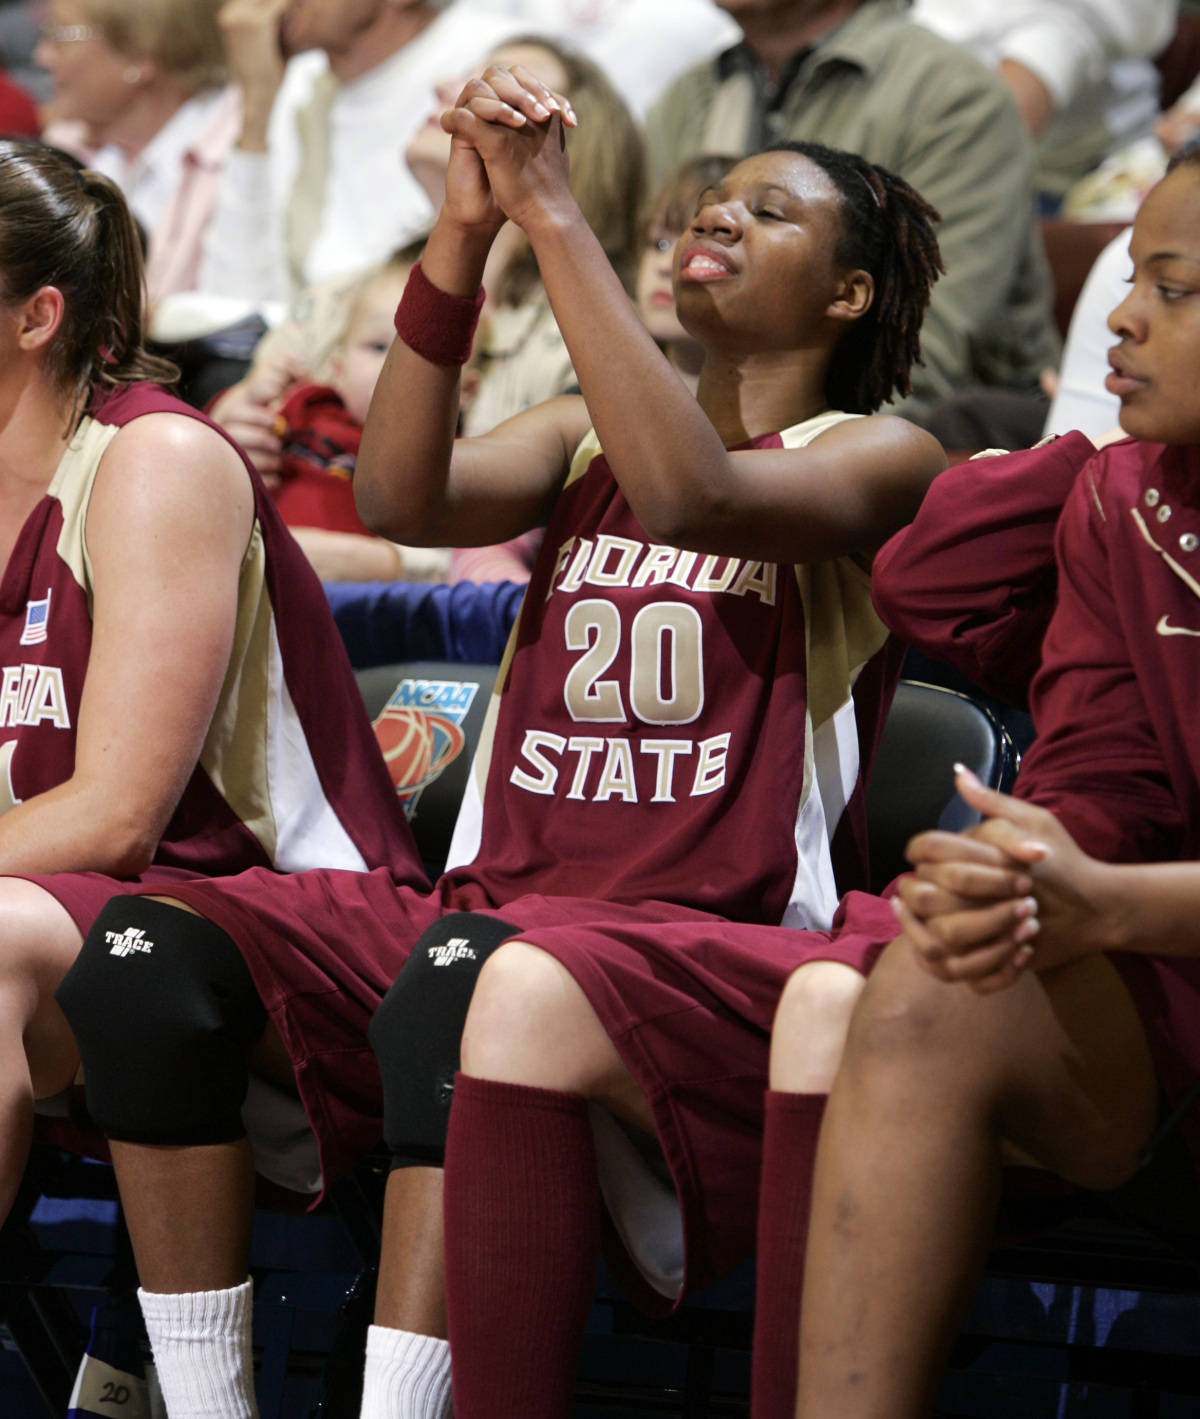 Florida State guard Tanae Davis-Cain holds her hands together while on the bench in the final minutes of the second half against Stanford during their second-round game in the NCAA women's basketball tournament in Stanford, Calif., Monday, March 19, 2007. Florida State upset Stanford 68-61. (AP Photo/Paul Sakuma)